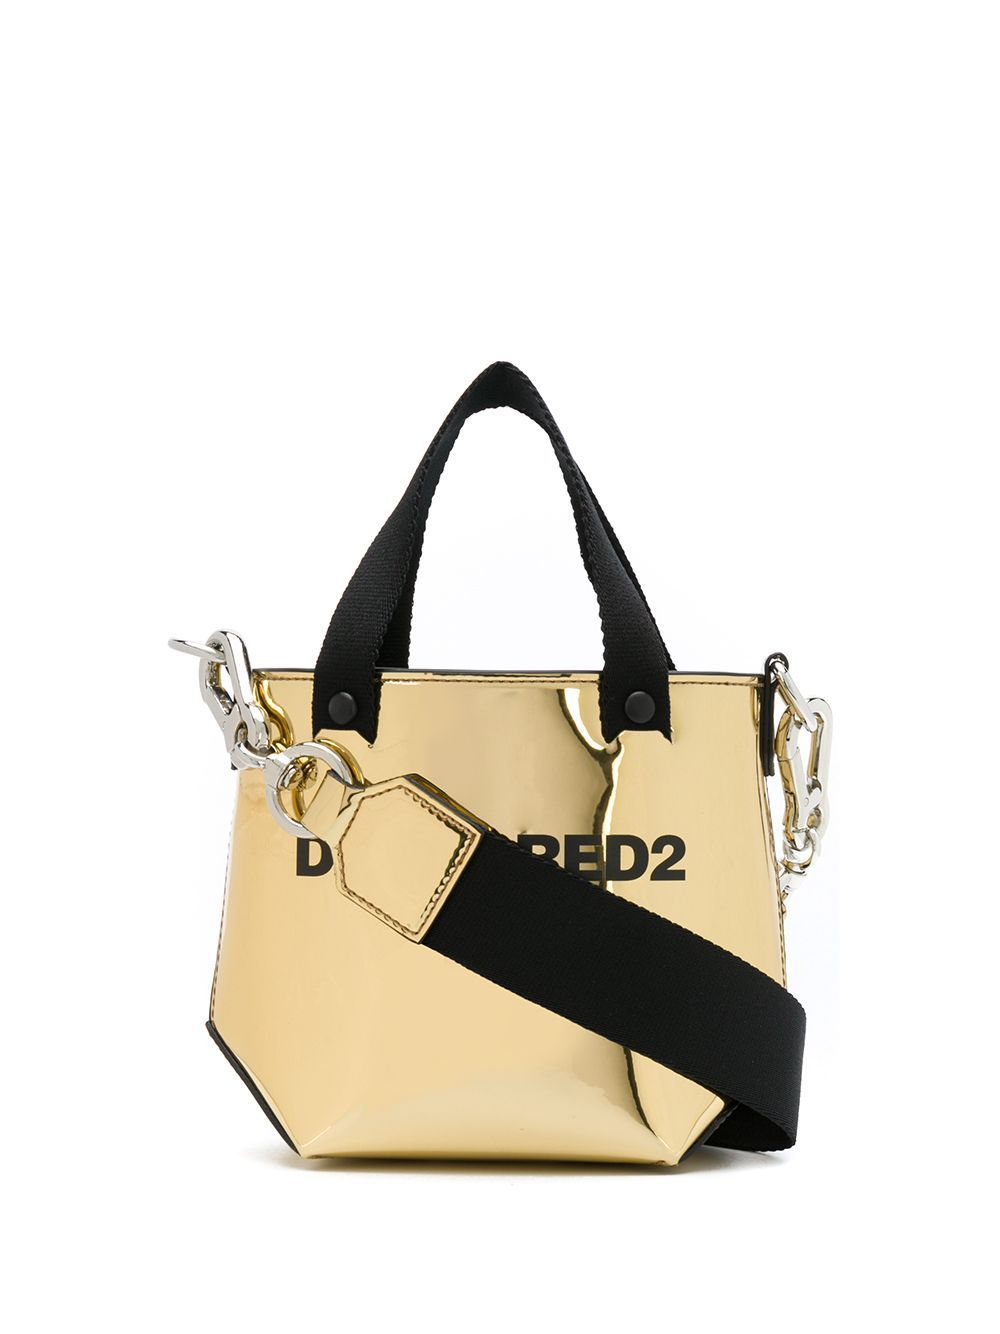 DSQUARED2 Logo Shopping Bag Gold/Black